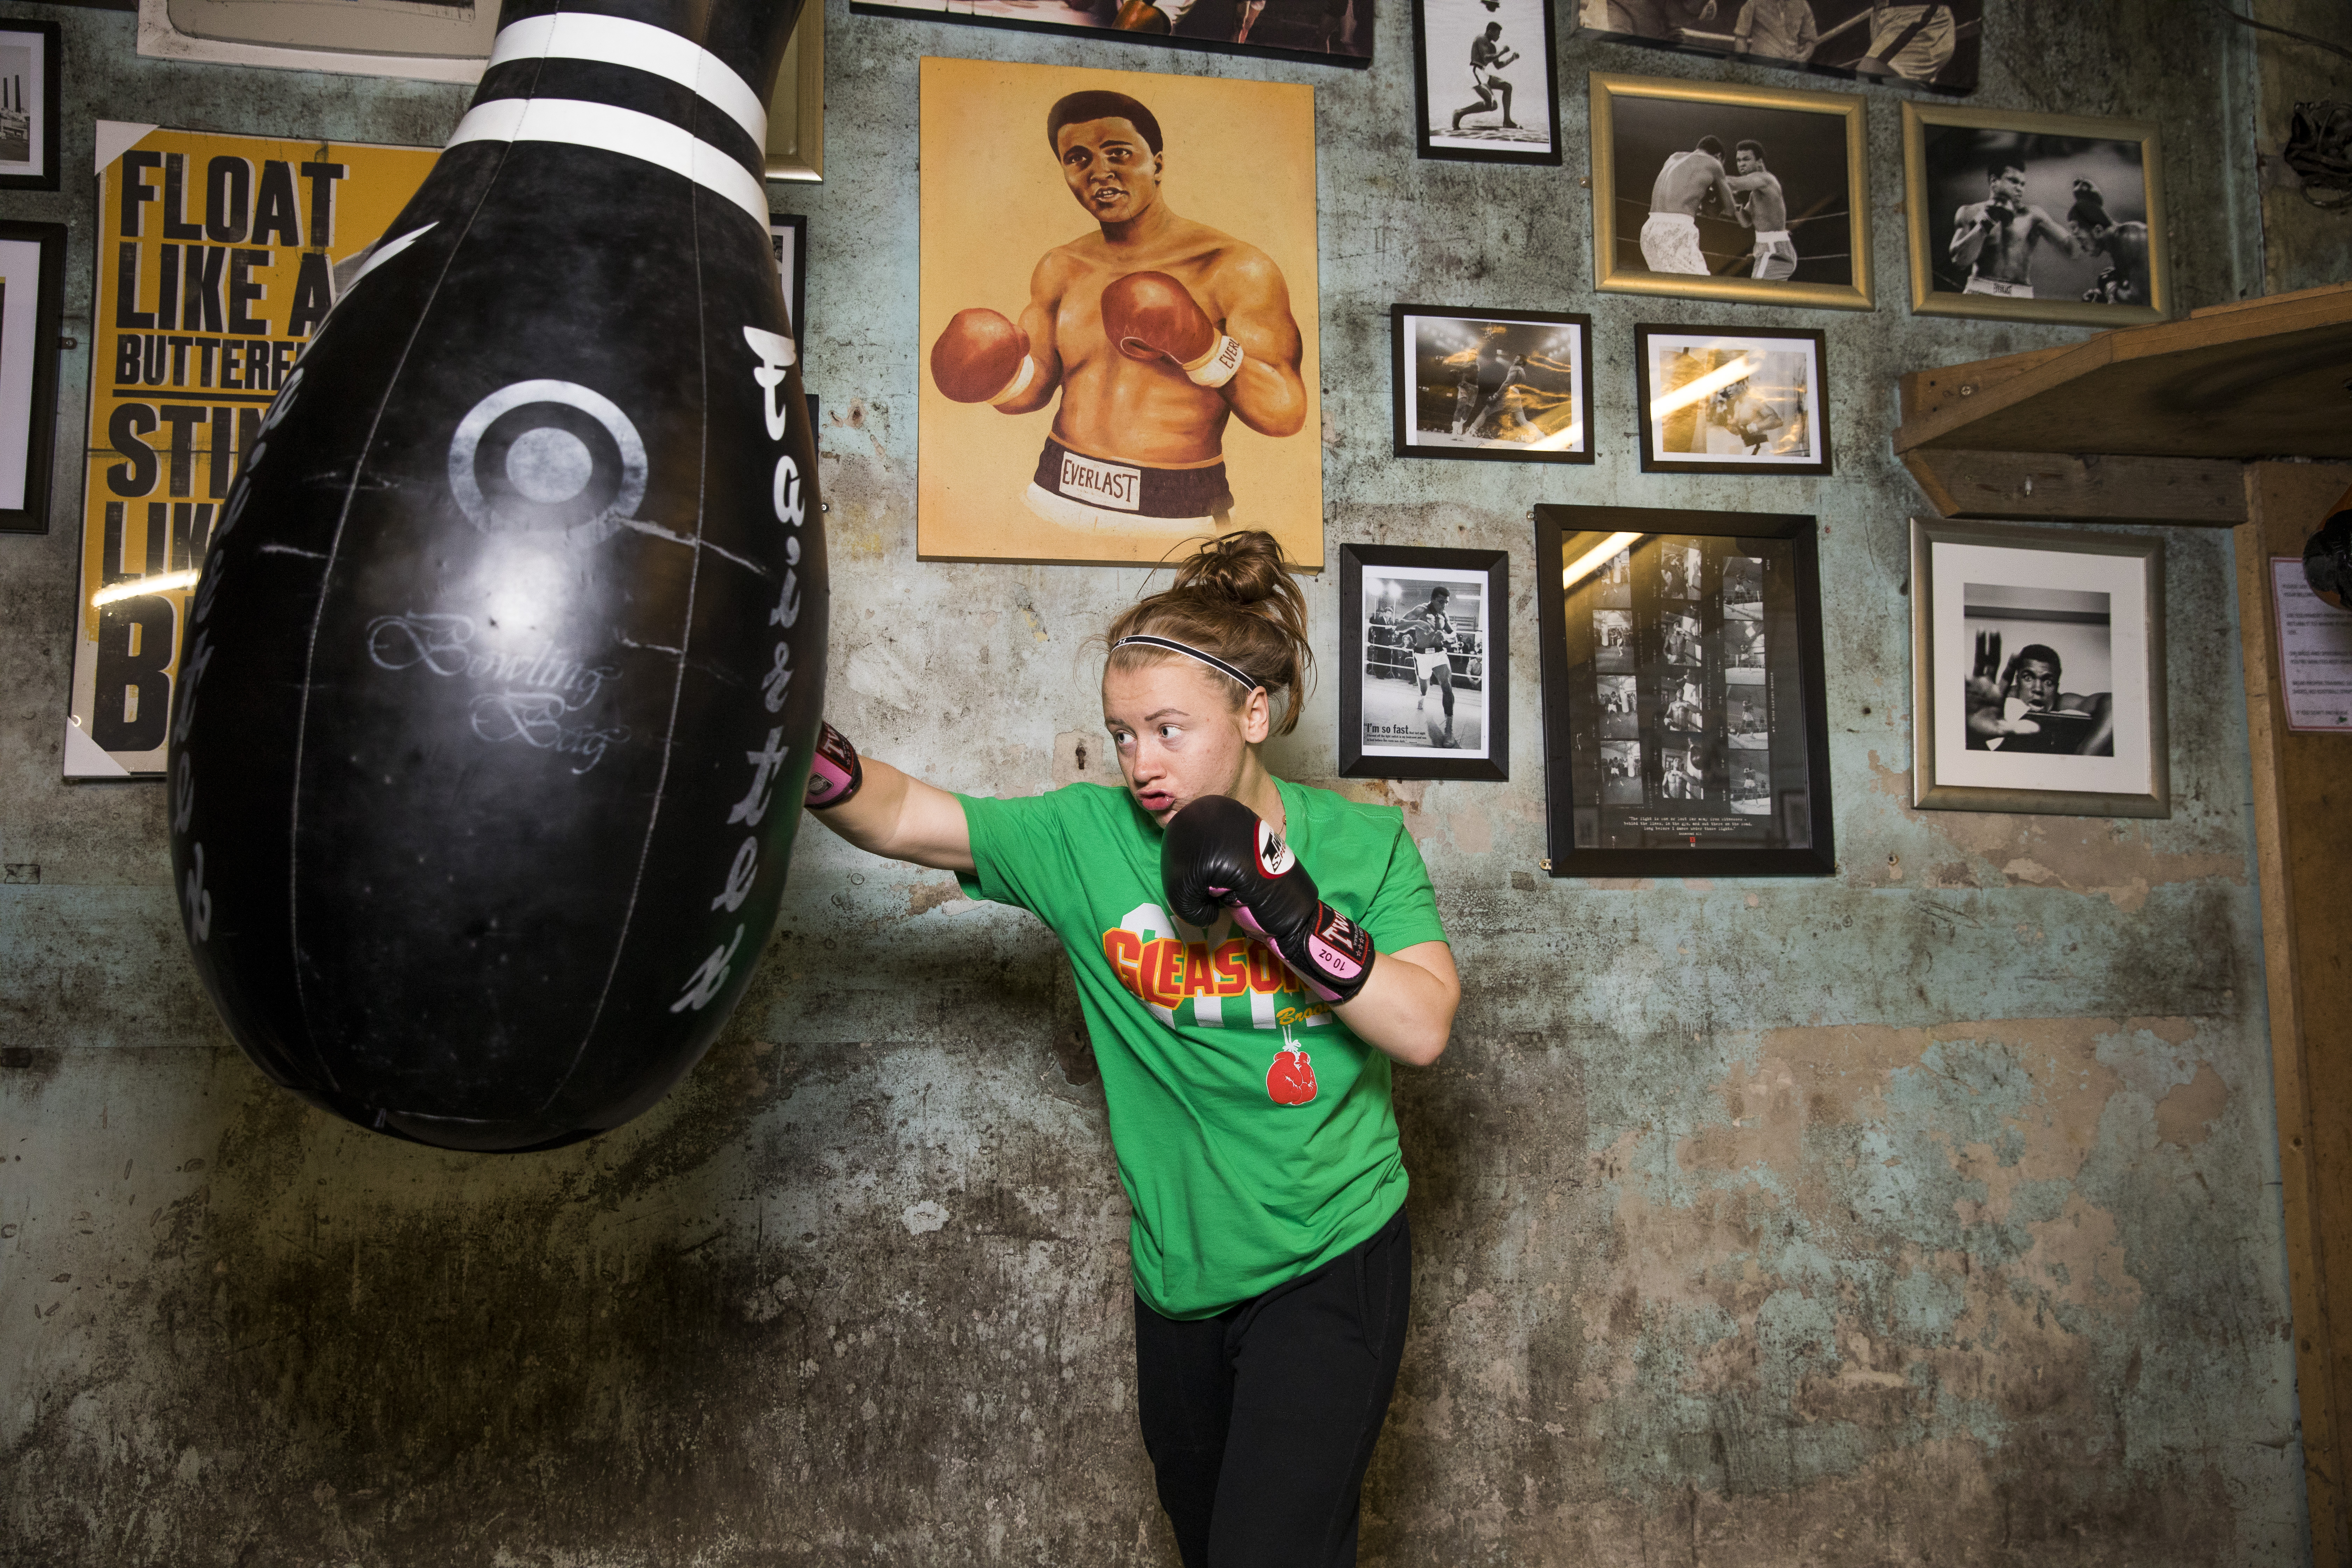 Boxer Cassidy Todd from Glasgow while on holiday in New York paid for a training session at the world famous Gleesons Gym, after the session she was invited to move there and be trained full time.